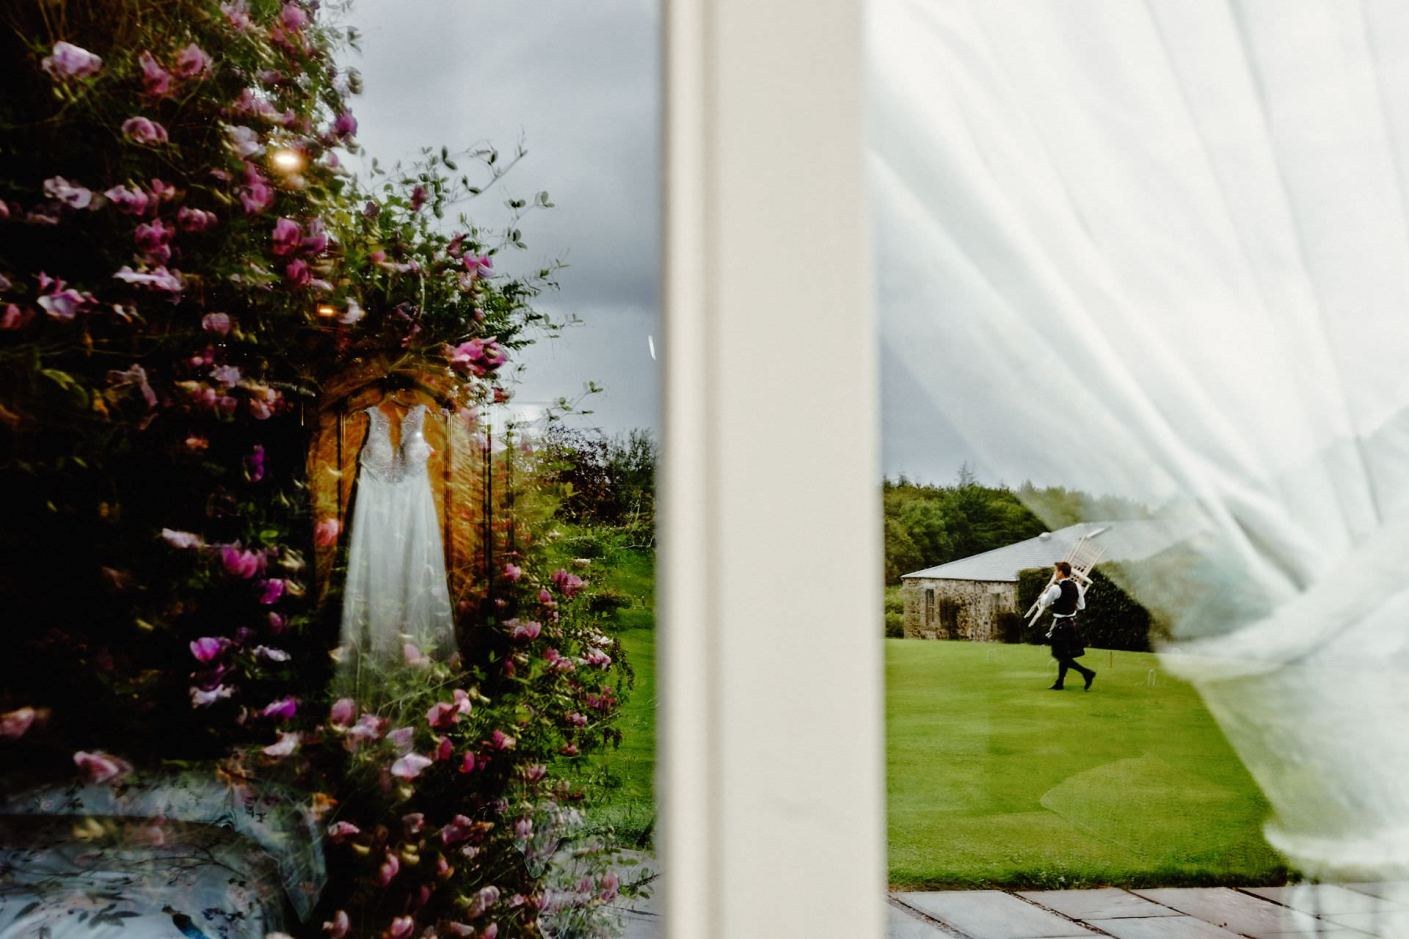 kilrie granary wedding photographer, wedding dress hanging on the wardrobe and reflection in the window